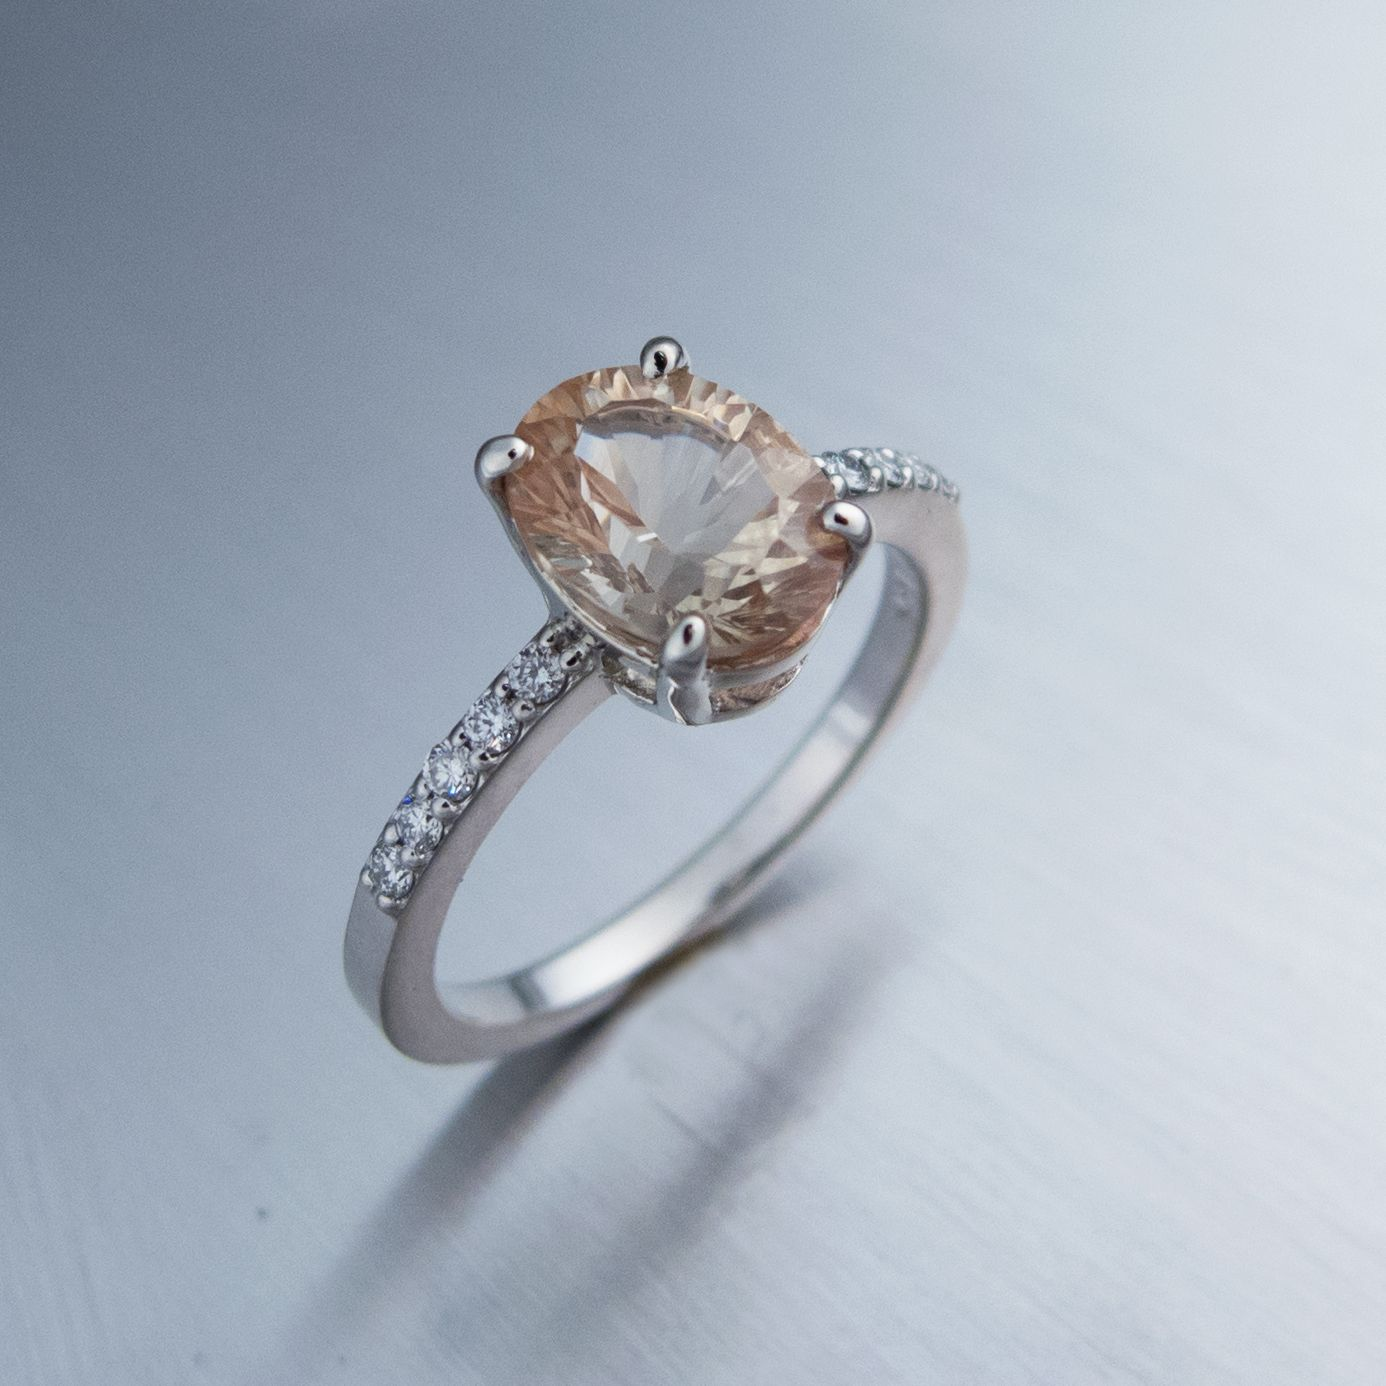 sun stone oregon kreis engagement kreisjewellery ring sunstone usa rings collections